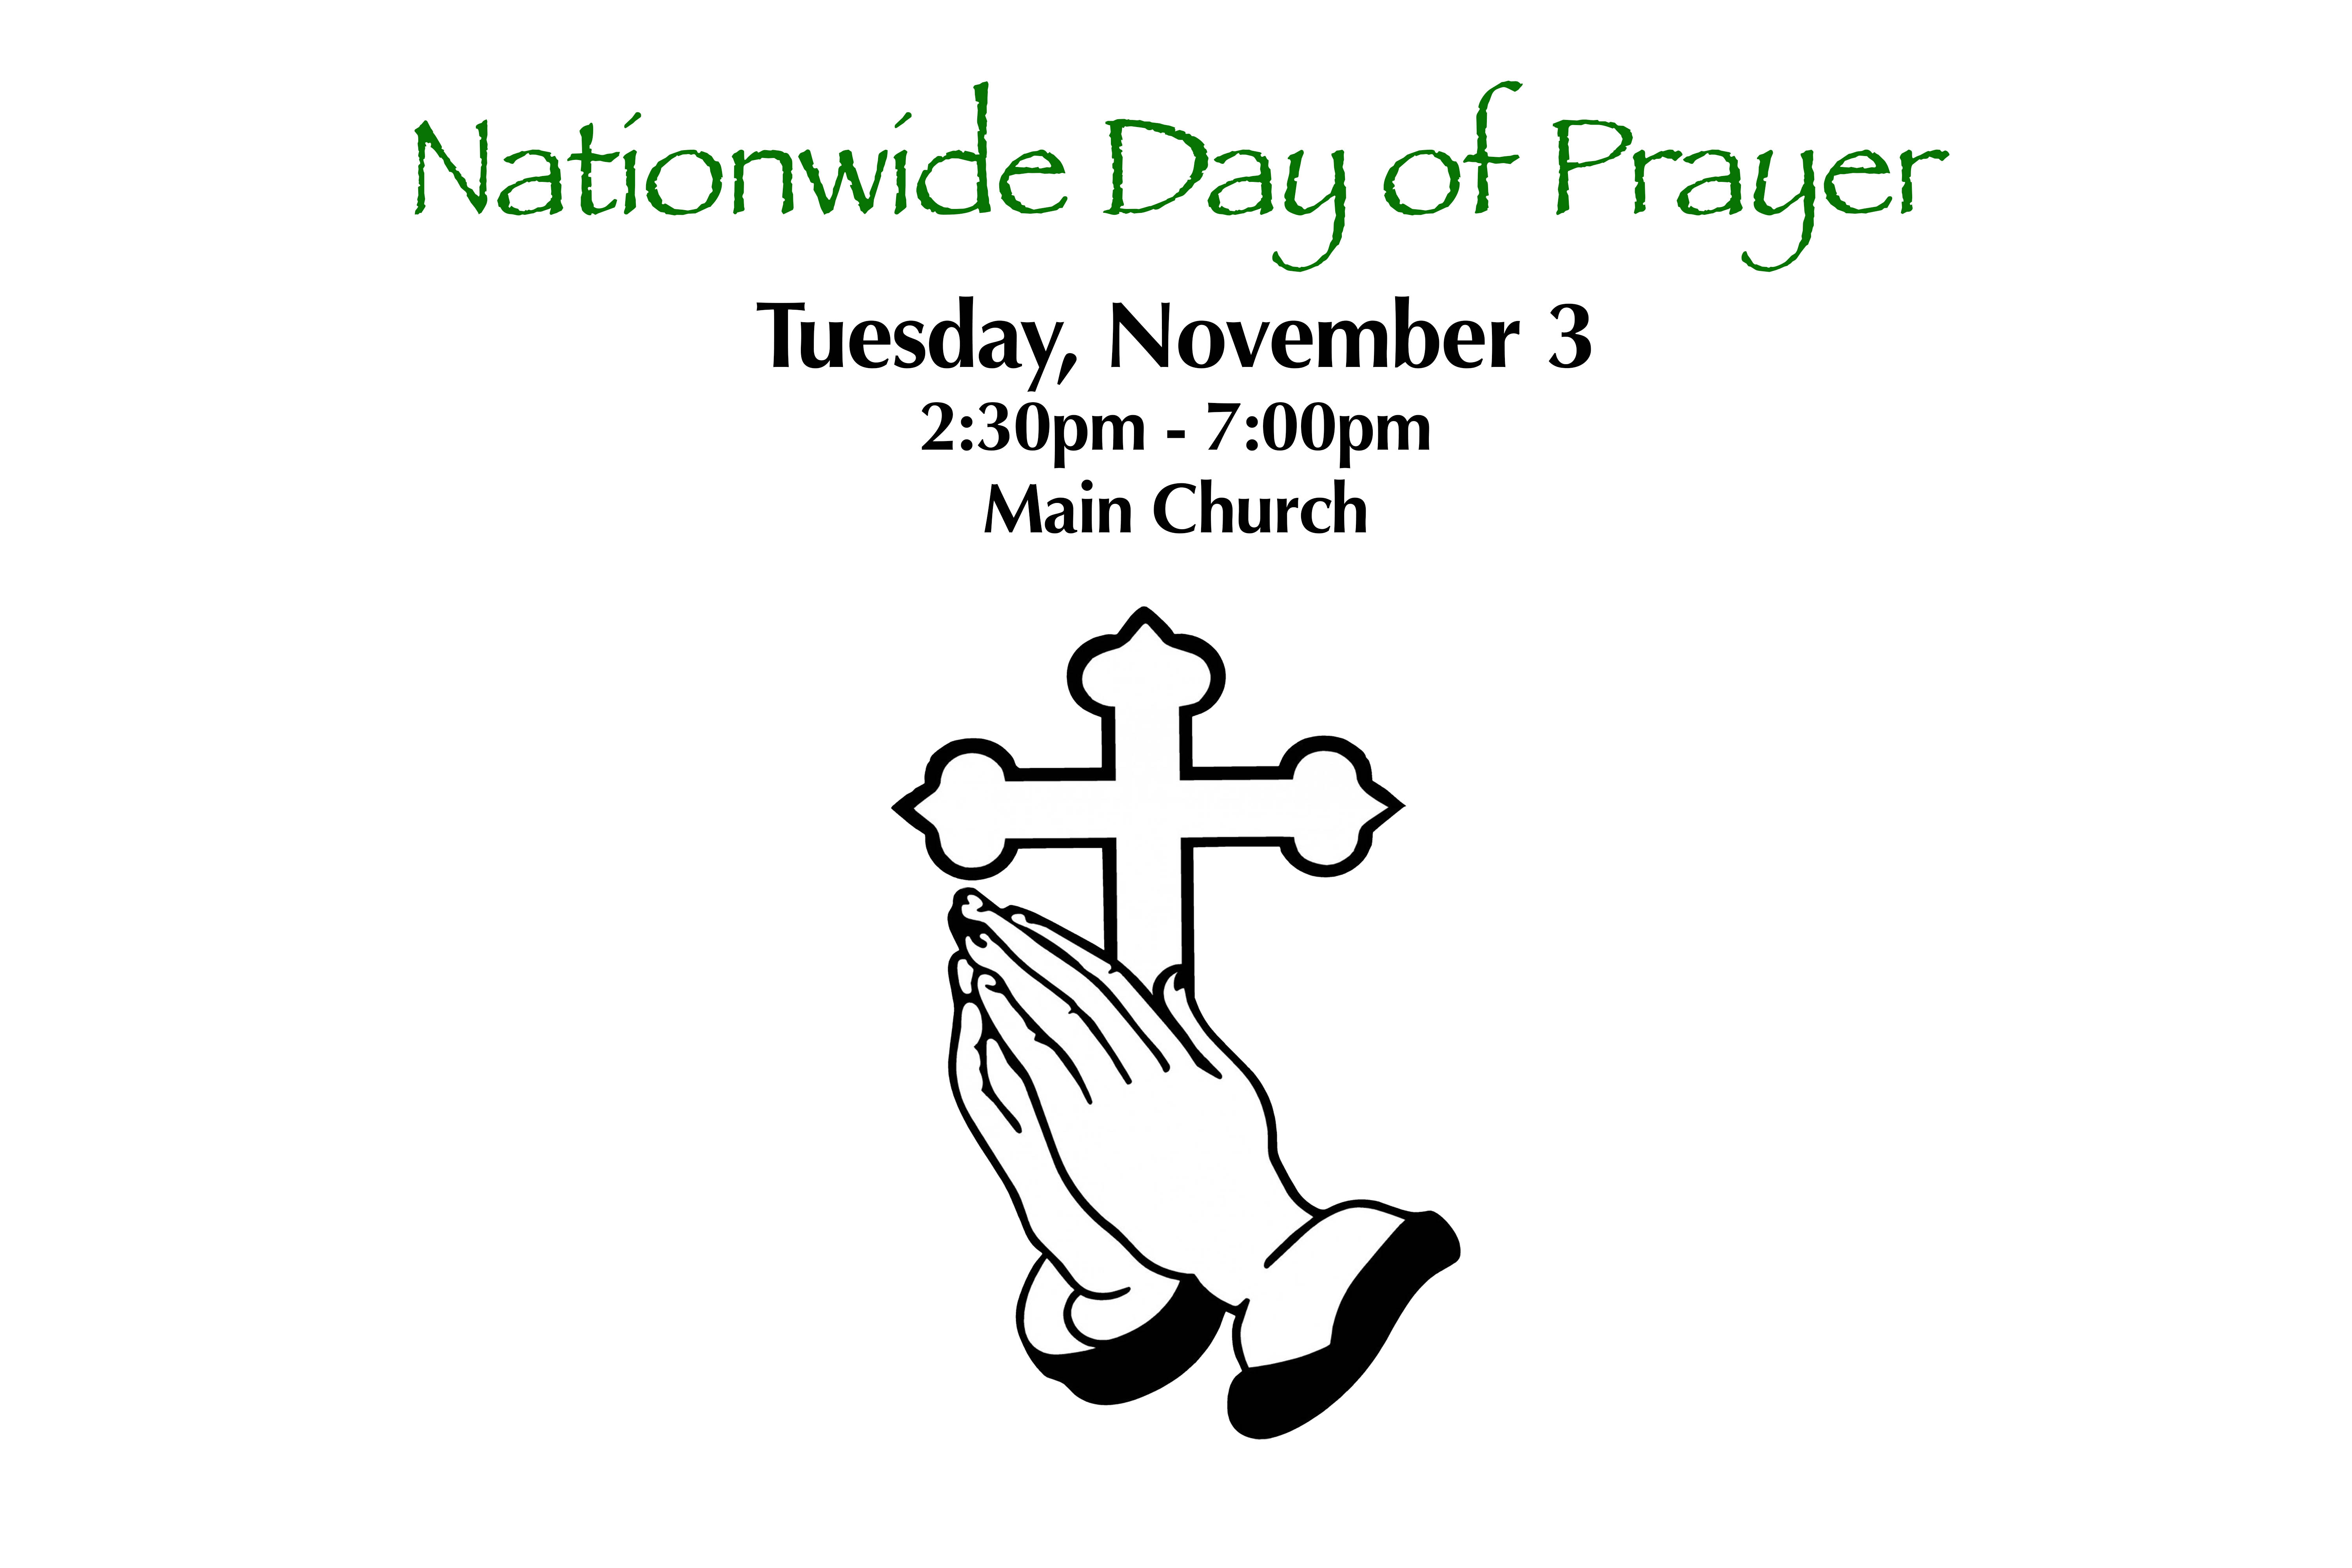 Nationwide Day of Prayer